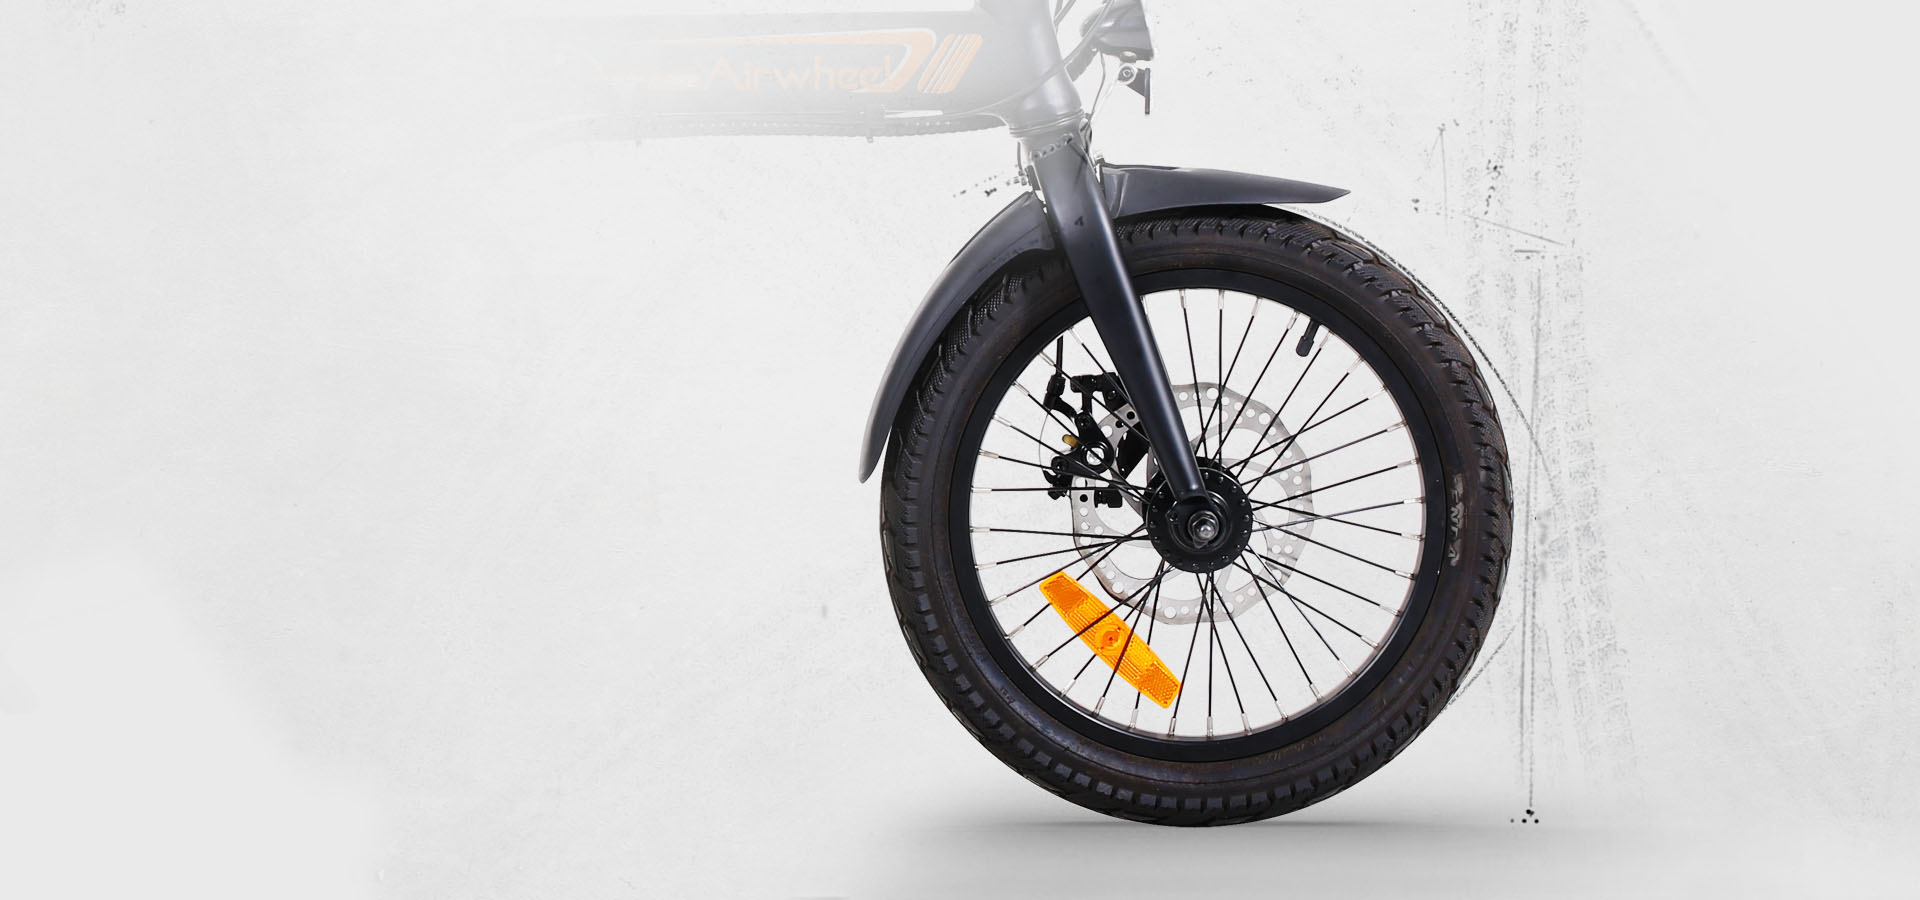 Airwheel R5 tire